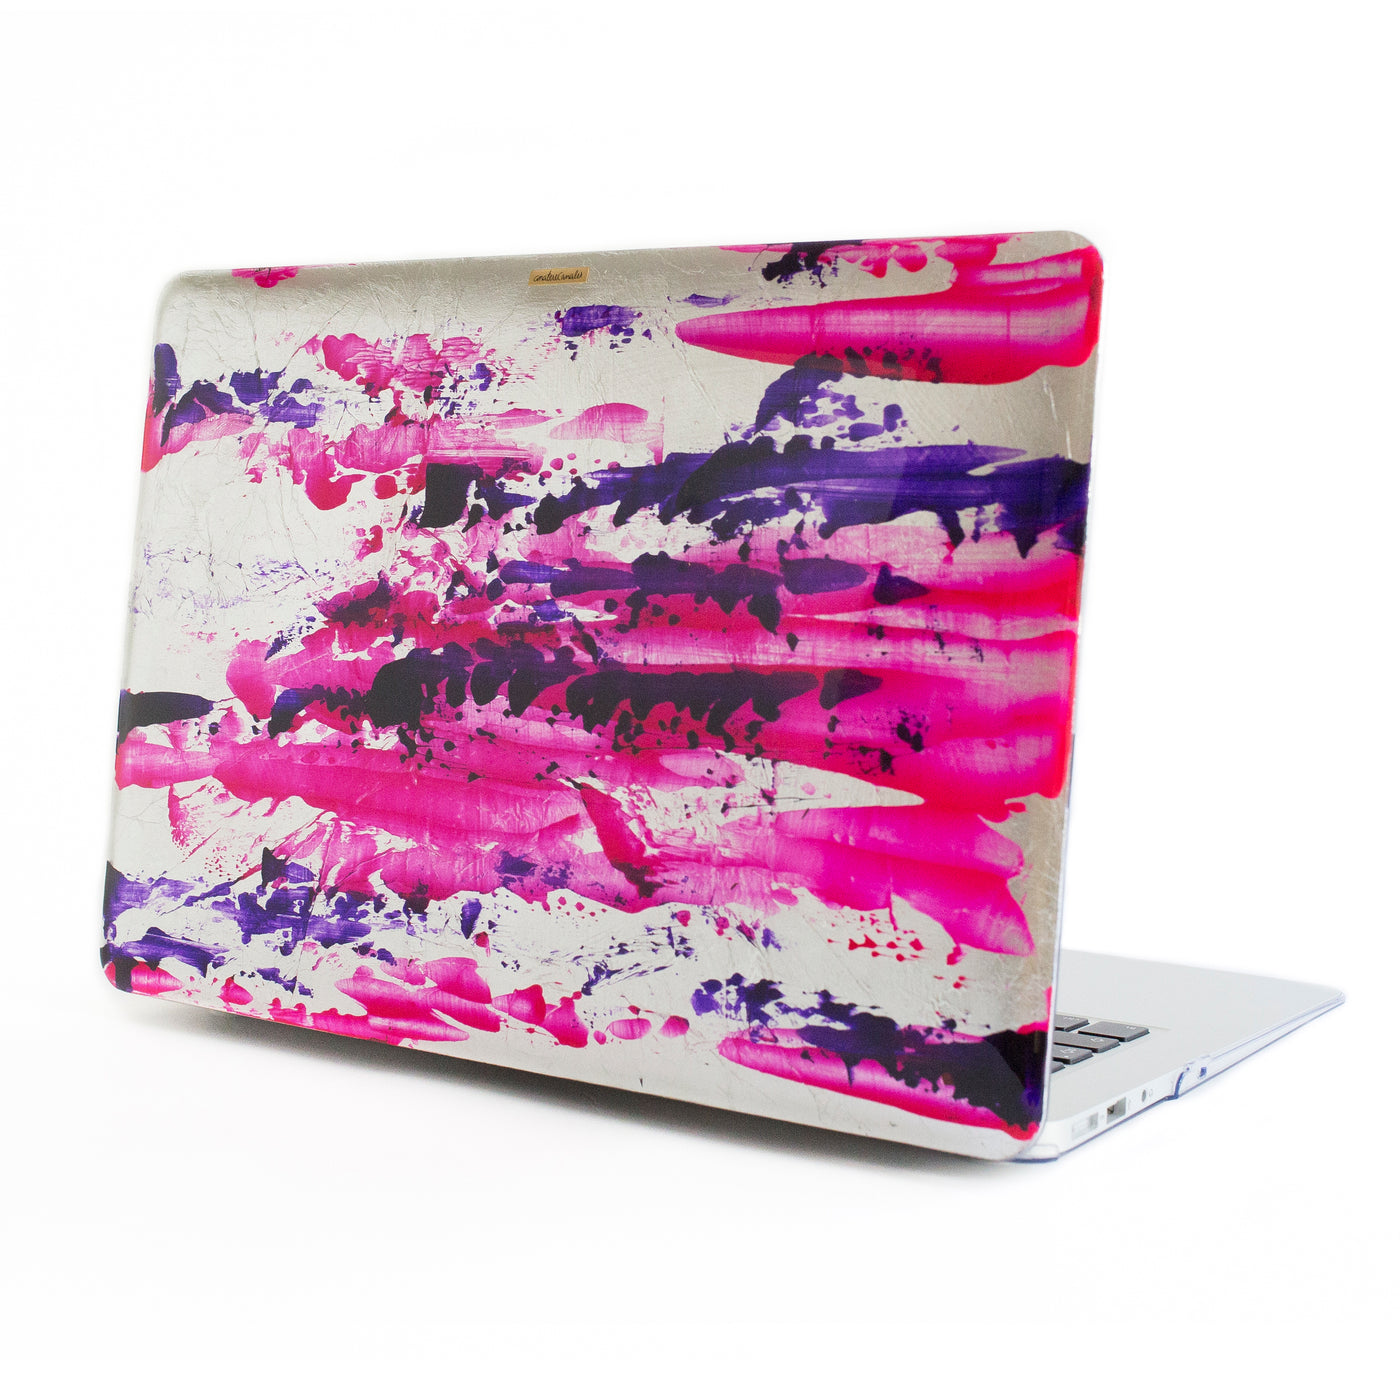 Feminist Silver Rush Macbook - Ana Tere Canales